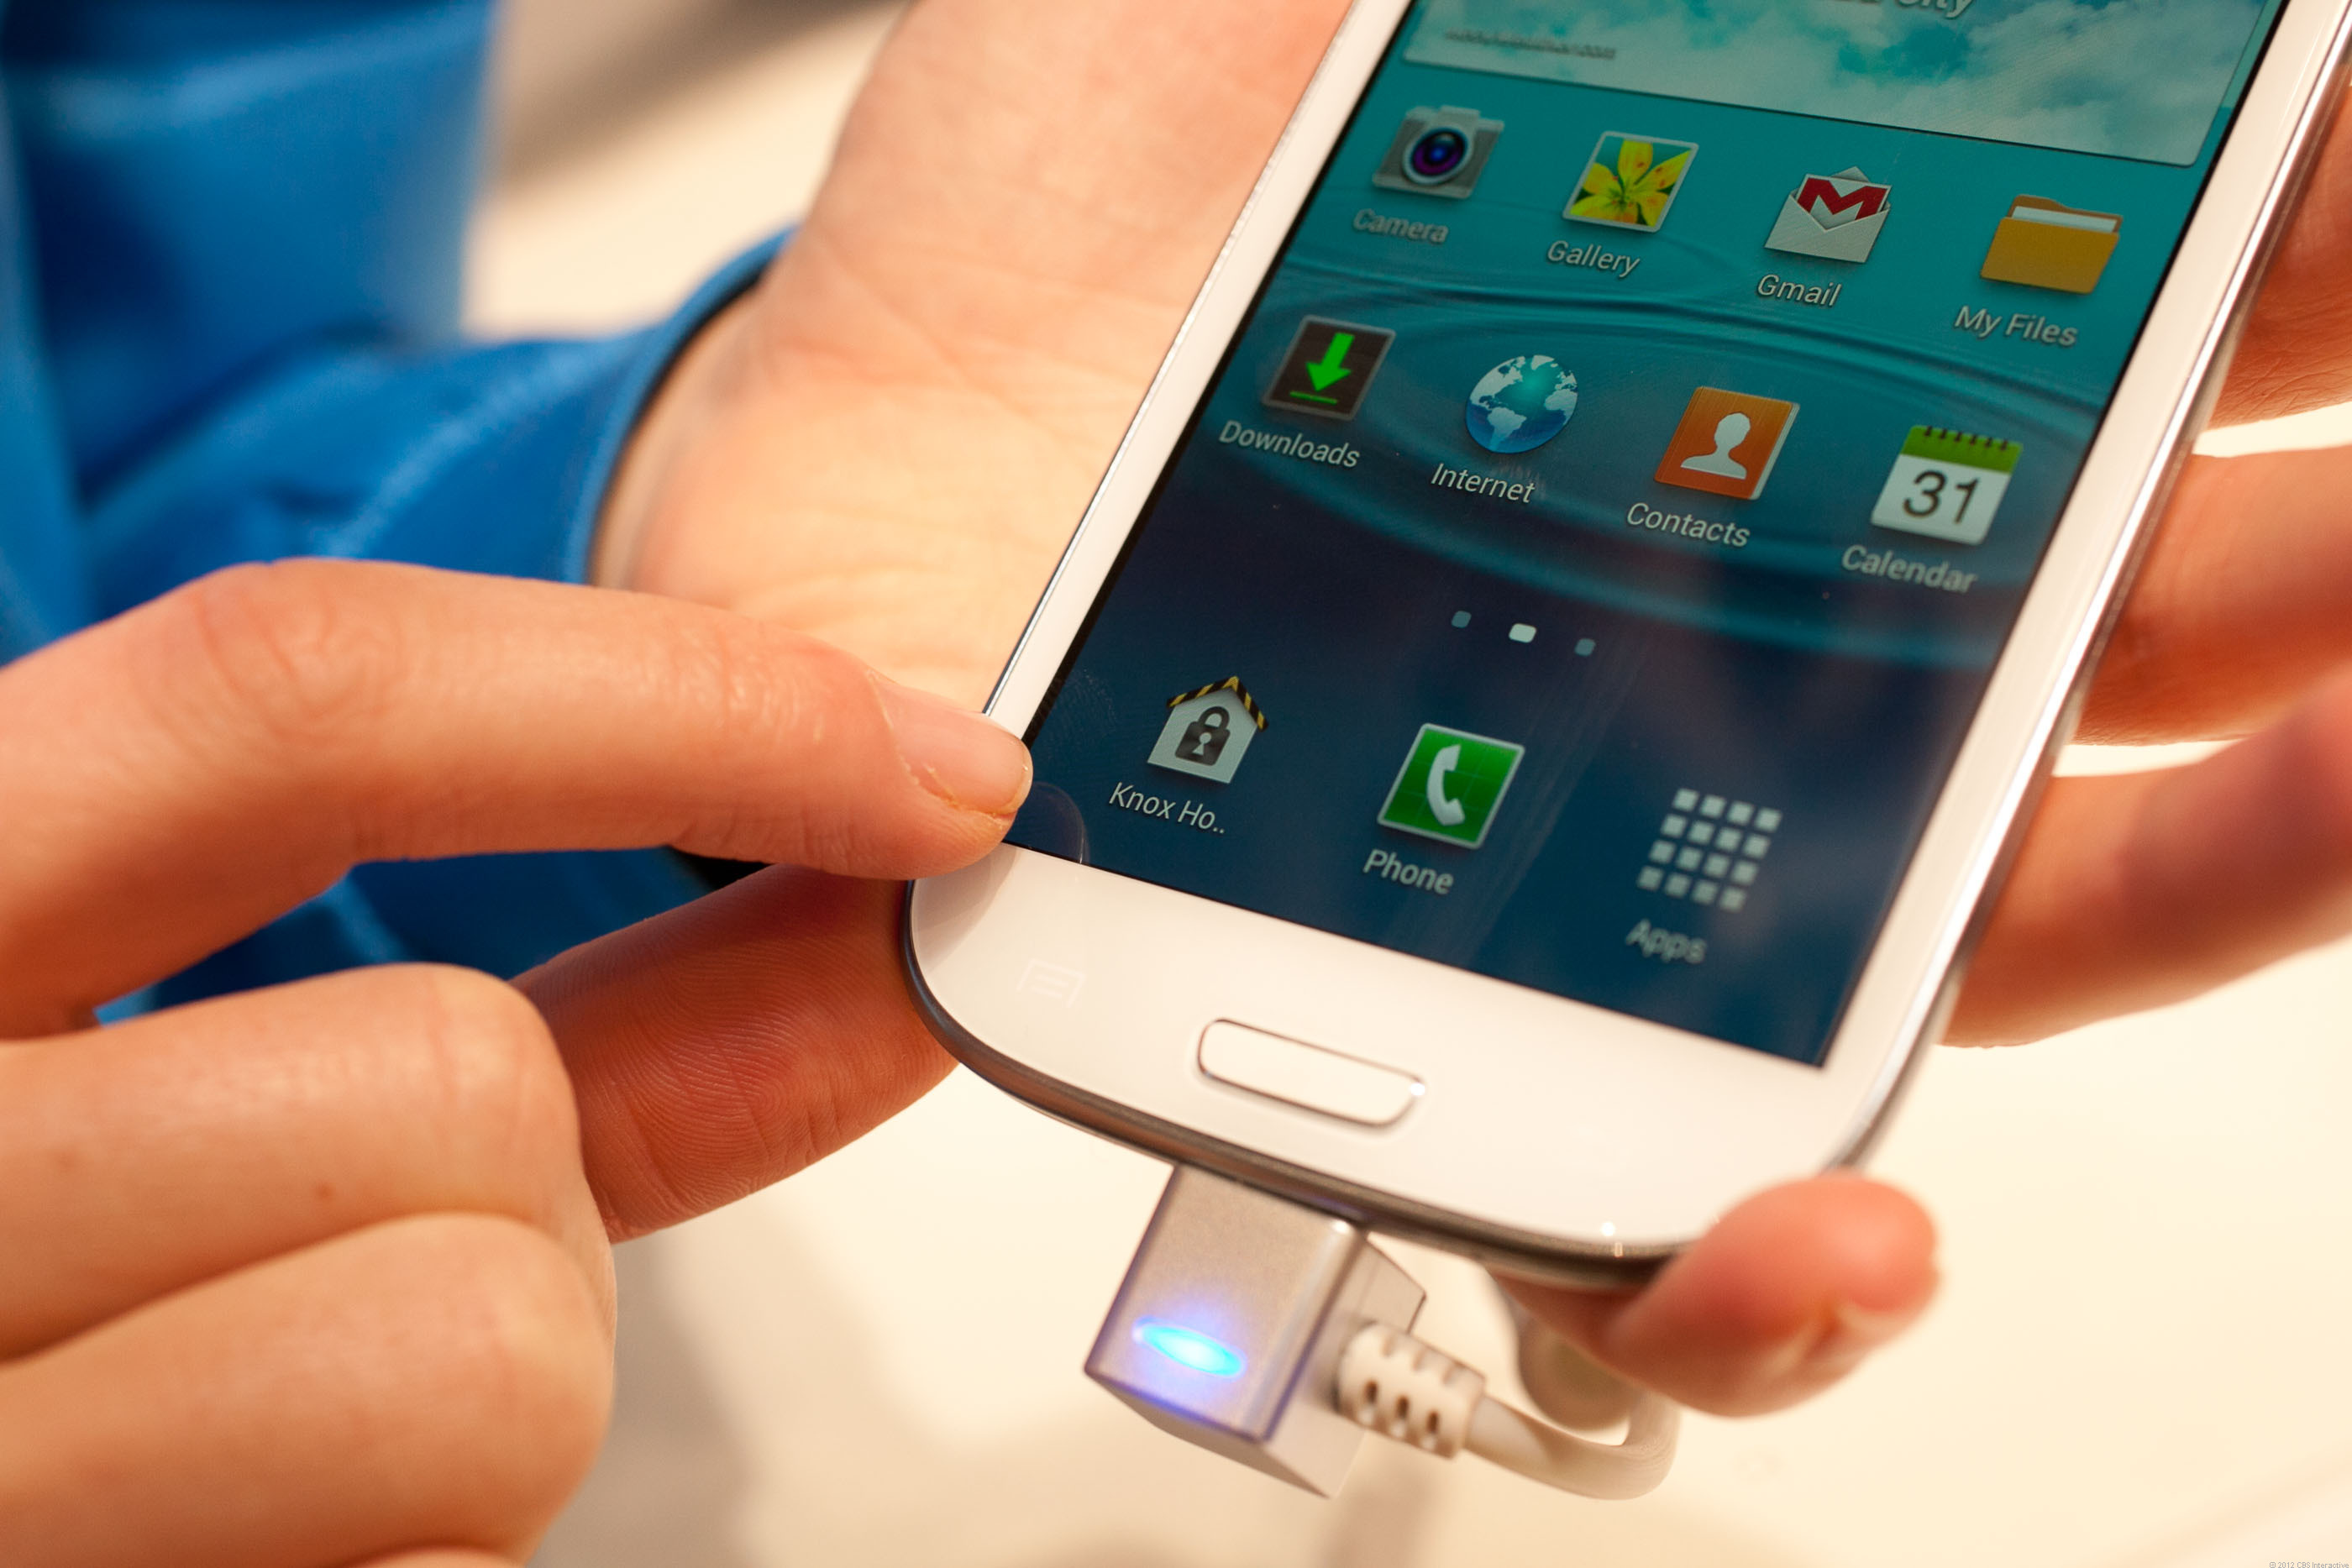 Samsung Knox in action